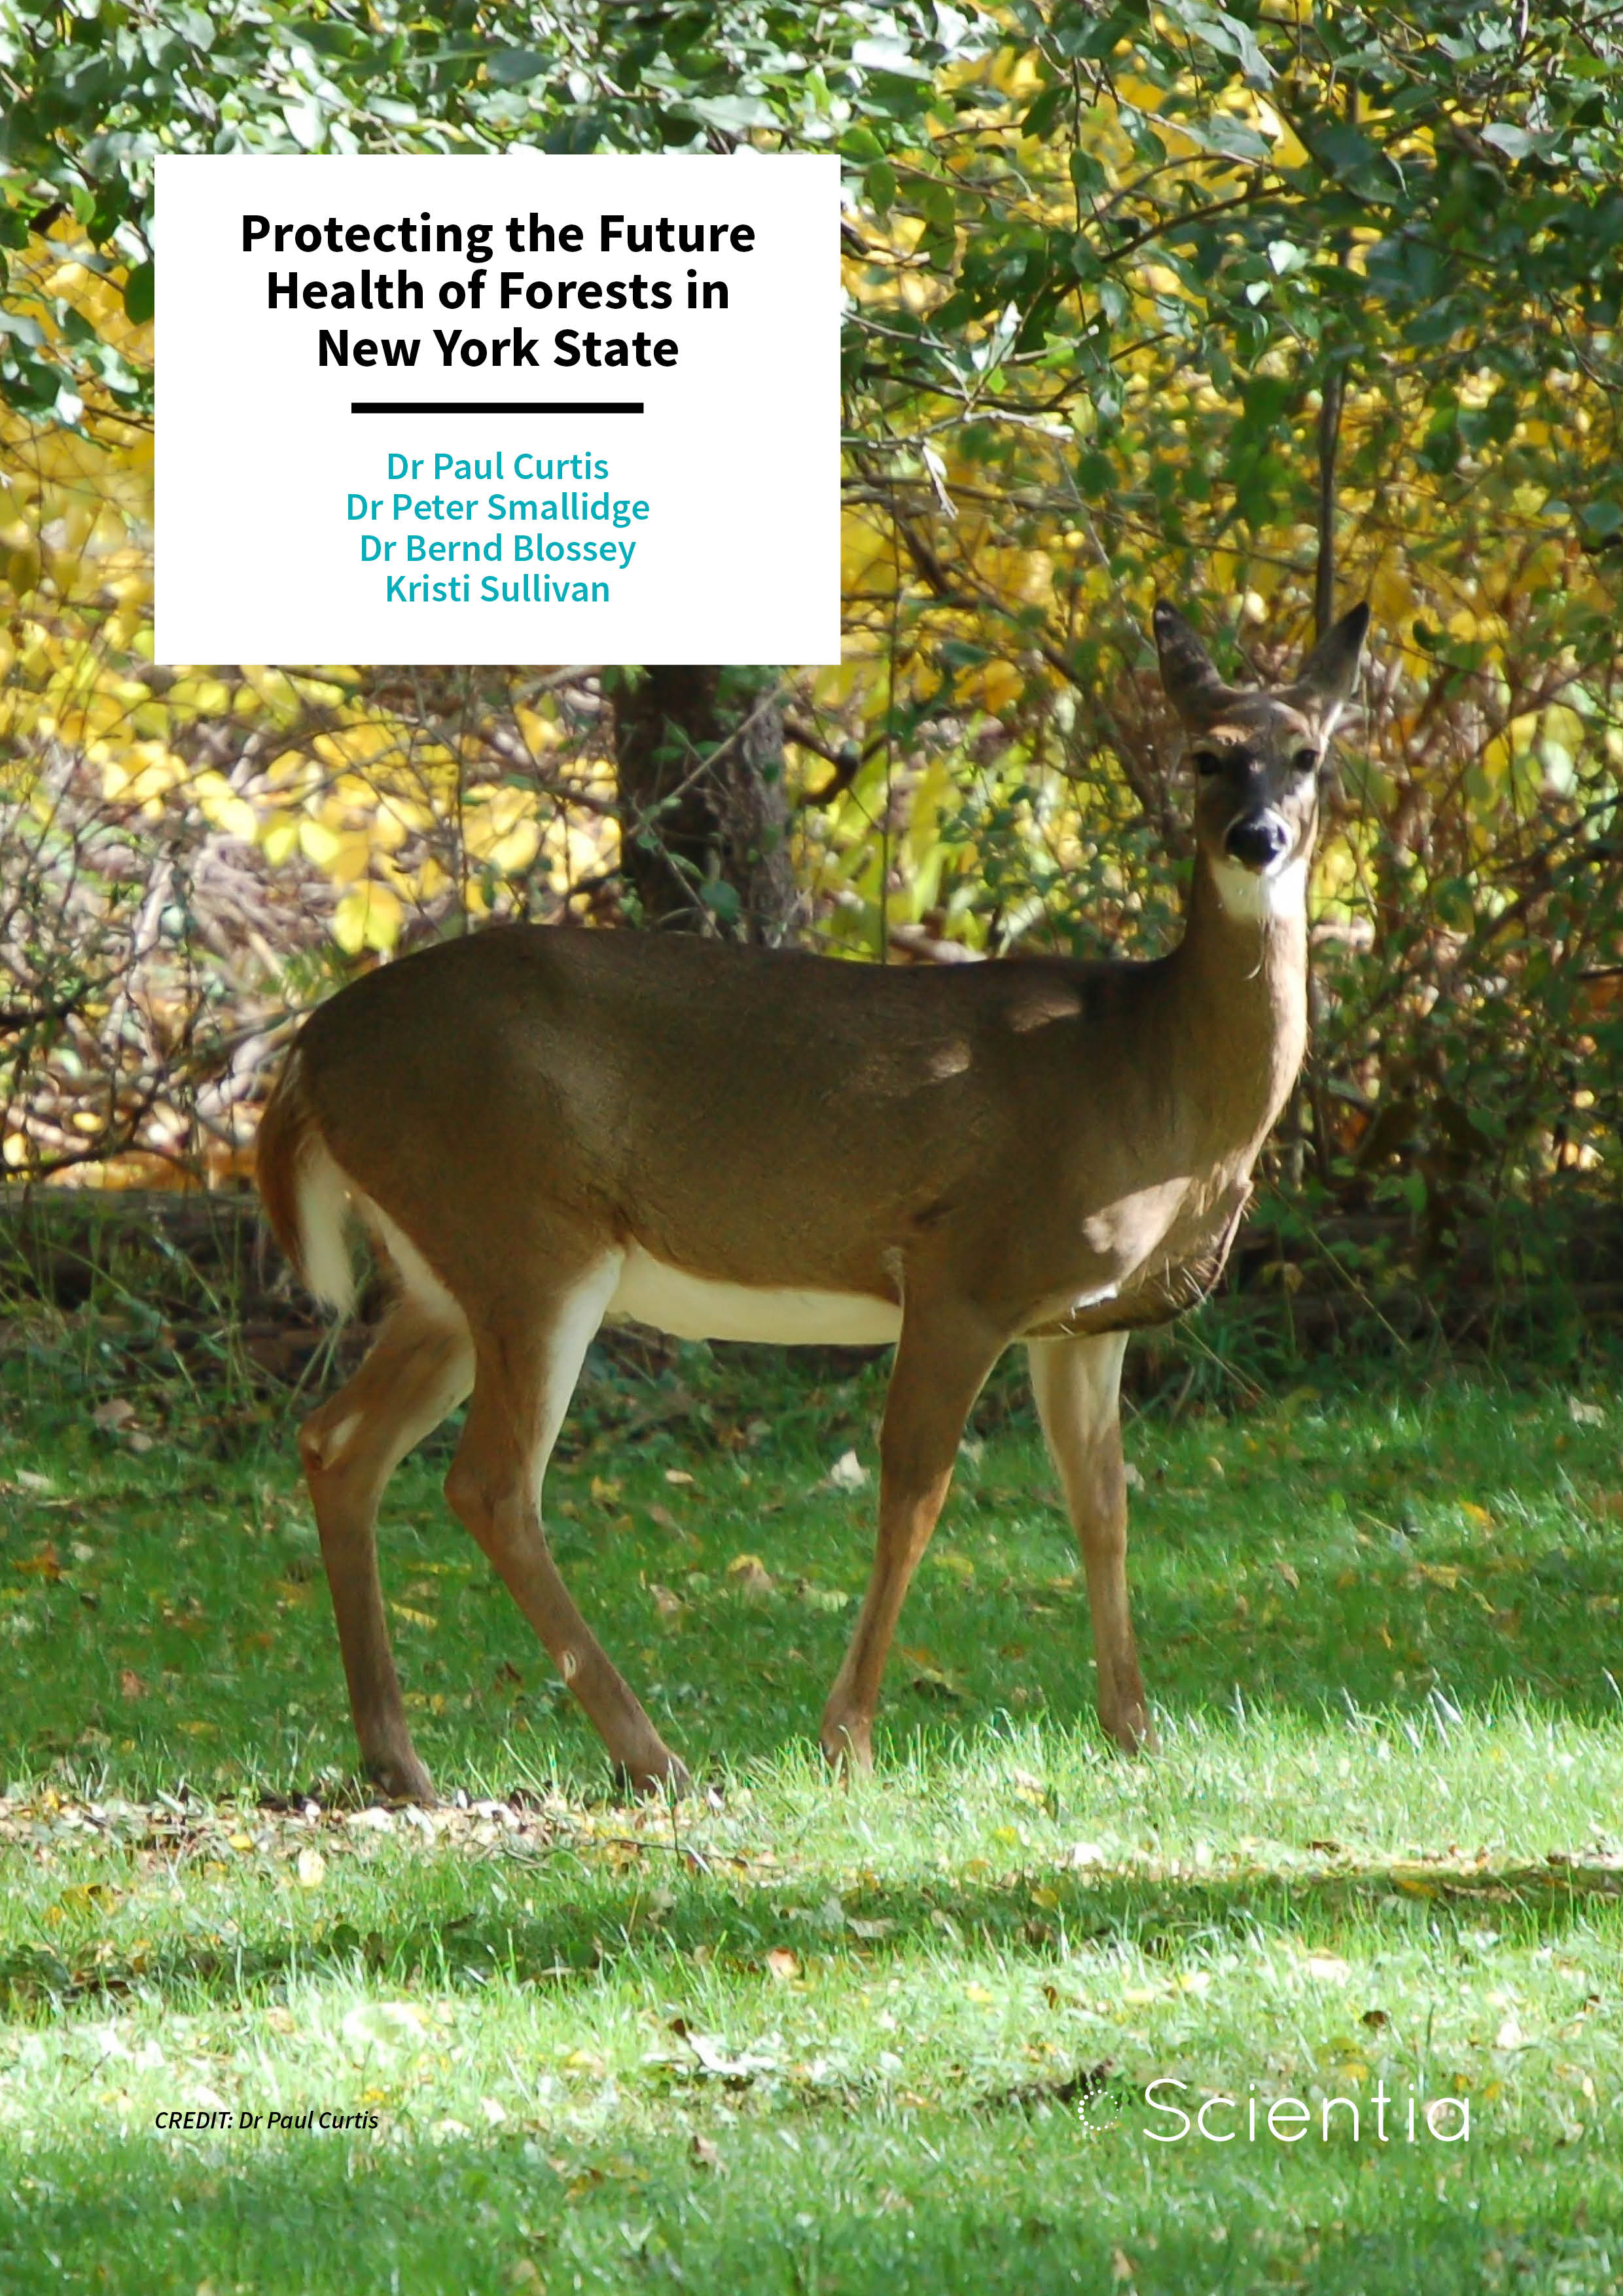 Dr Paul Curtis | Dr Peter Smallidge | Dr Bernd Blossey | Kristi Sullivan – Protecting the Future Health of Forests in New York State